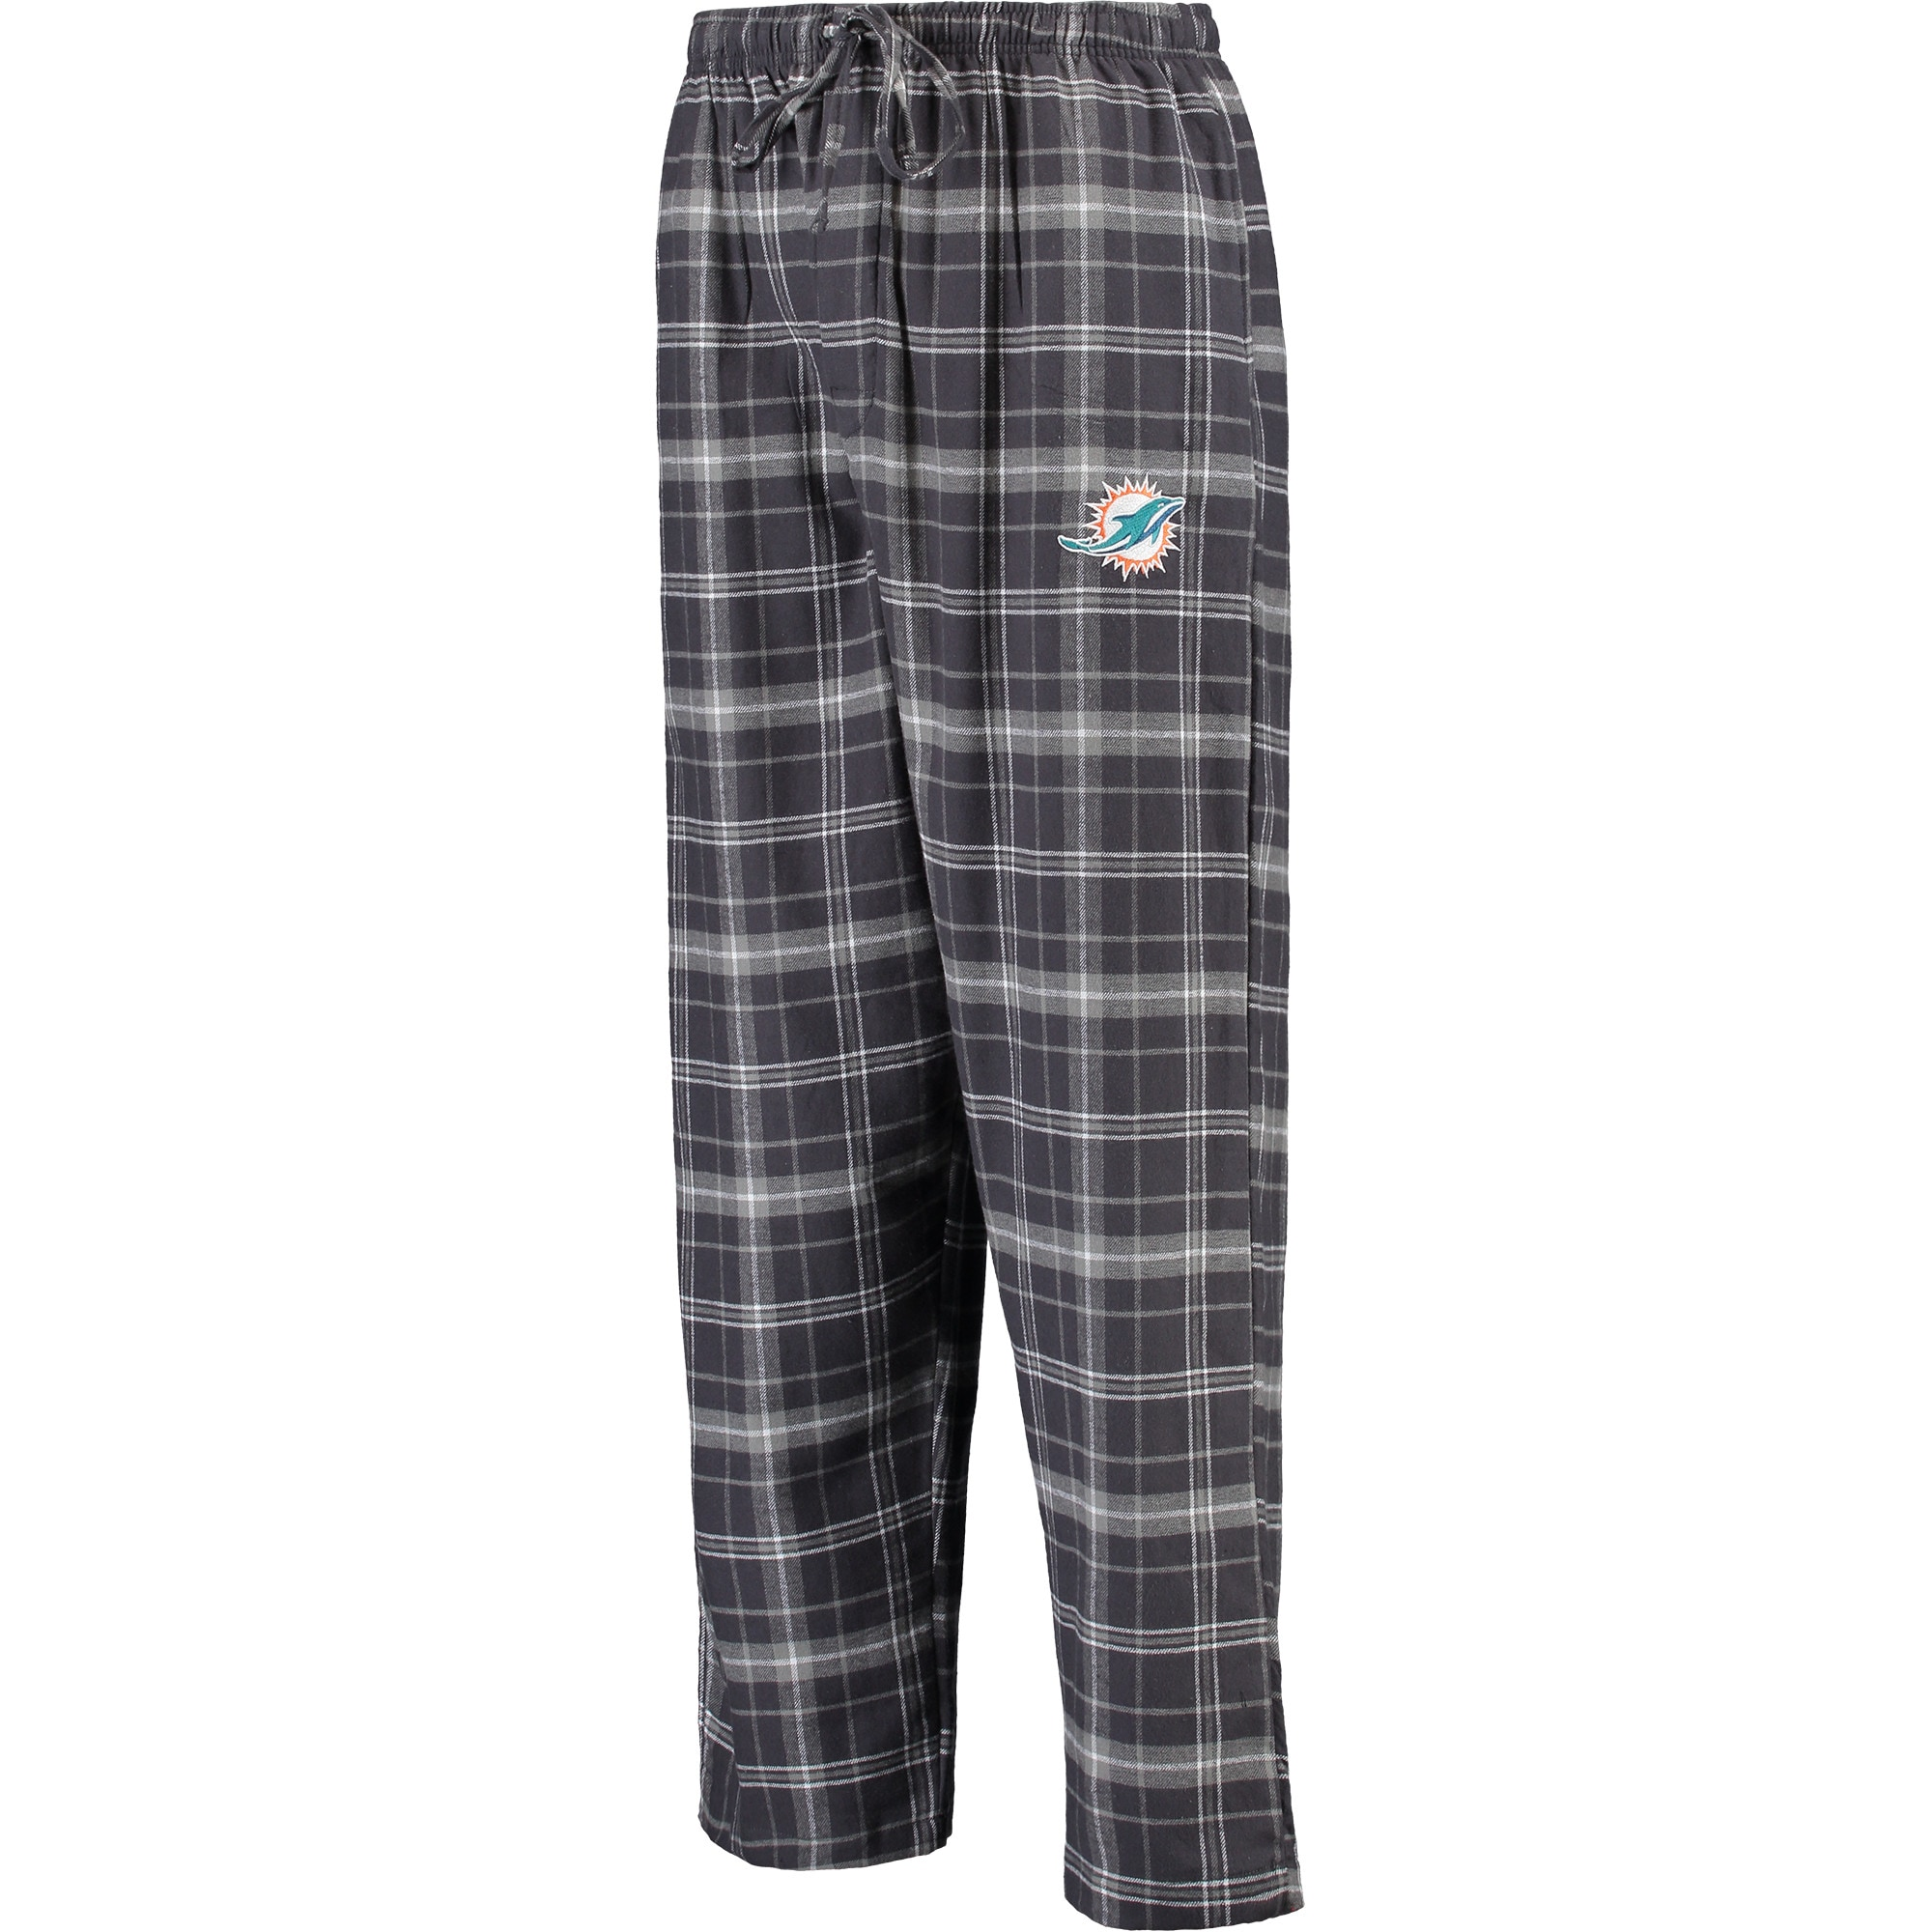 Miami Dolphins Concepts Sport Ultimate Plaid Flannel Pajama Pants - Charcoal